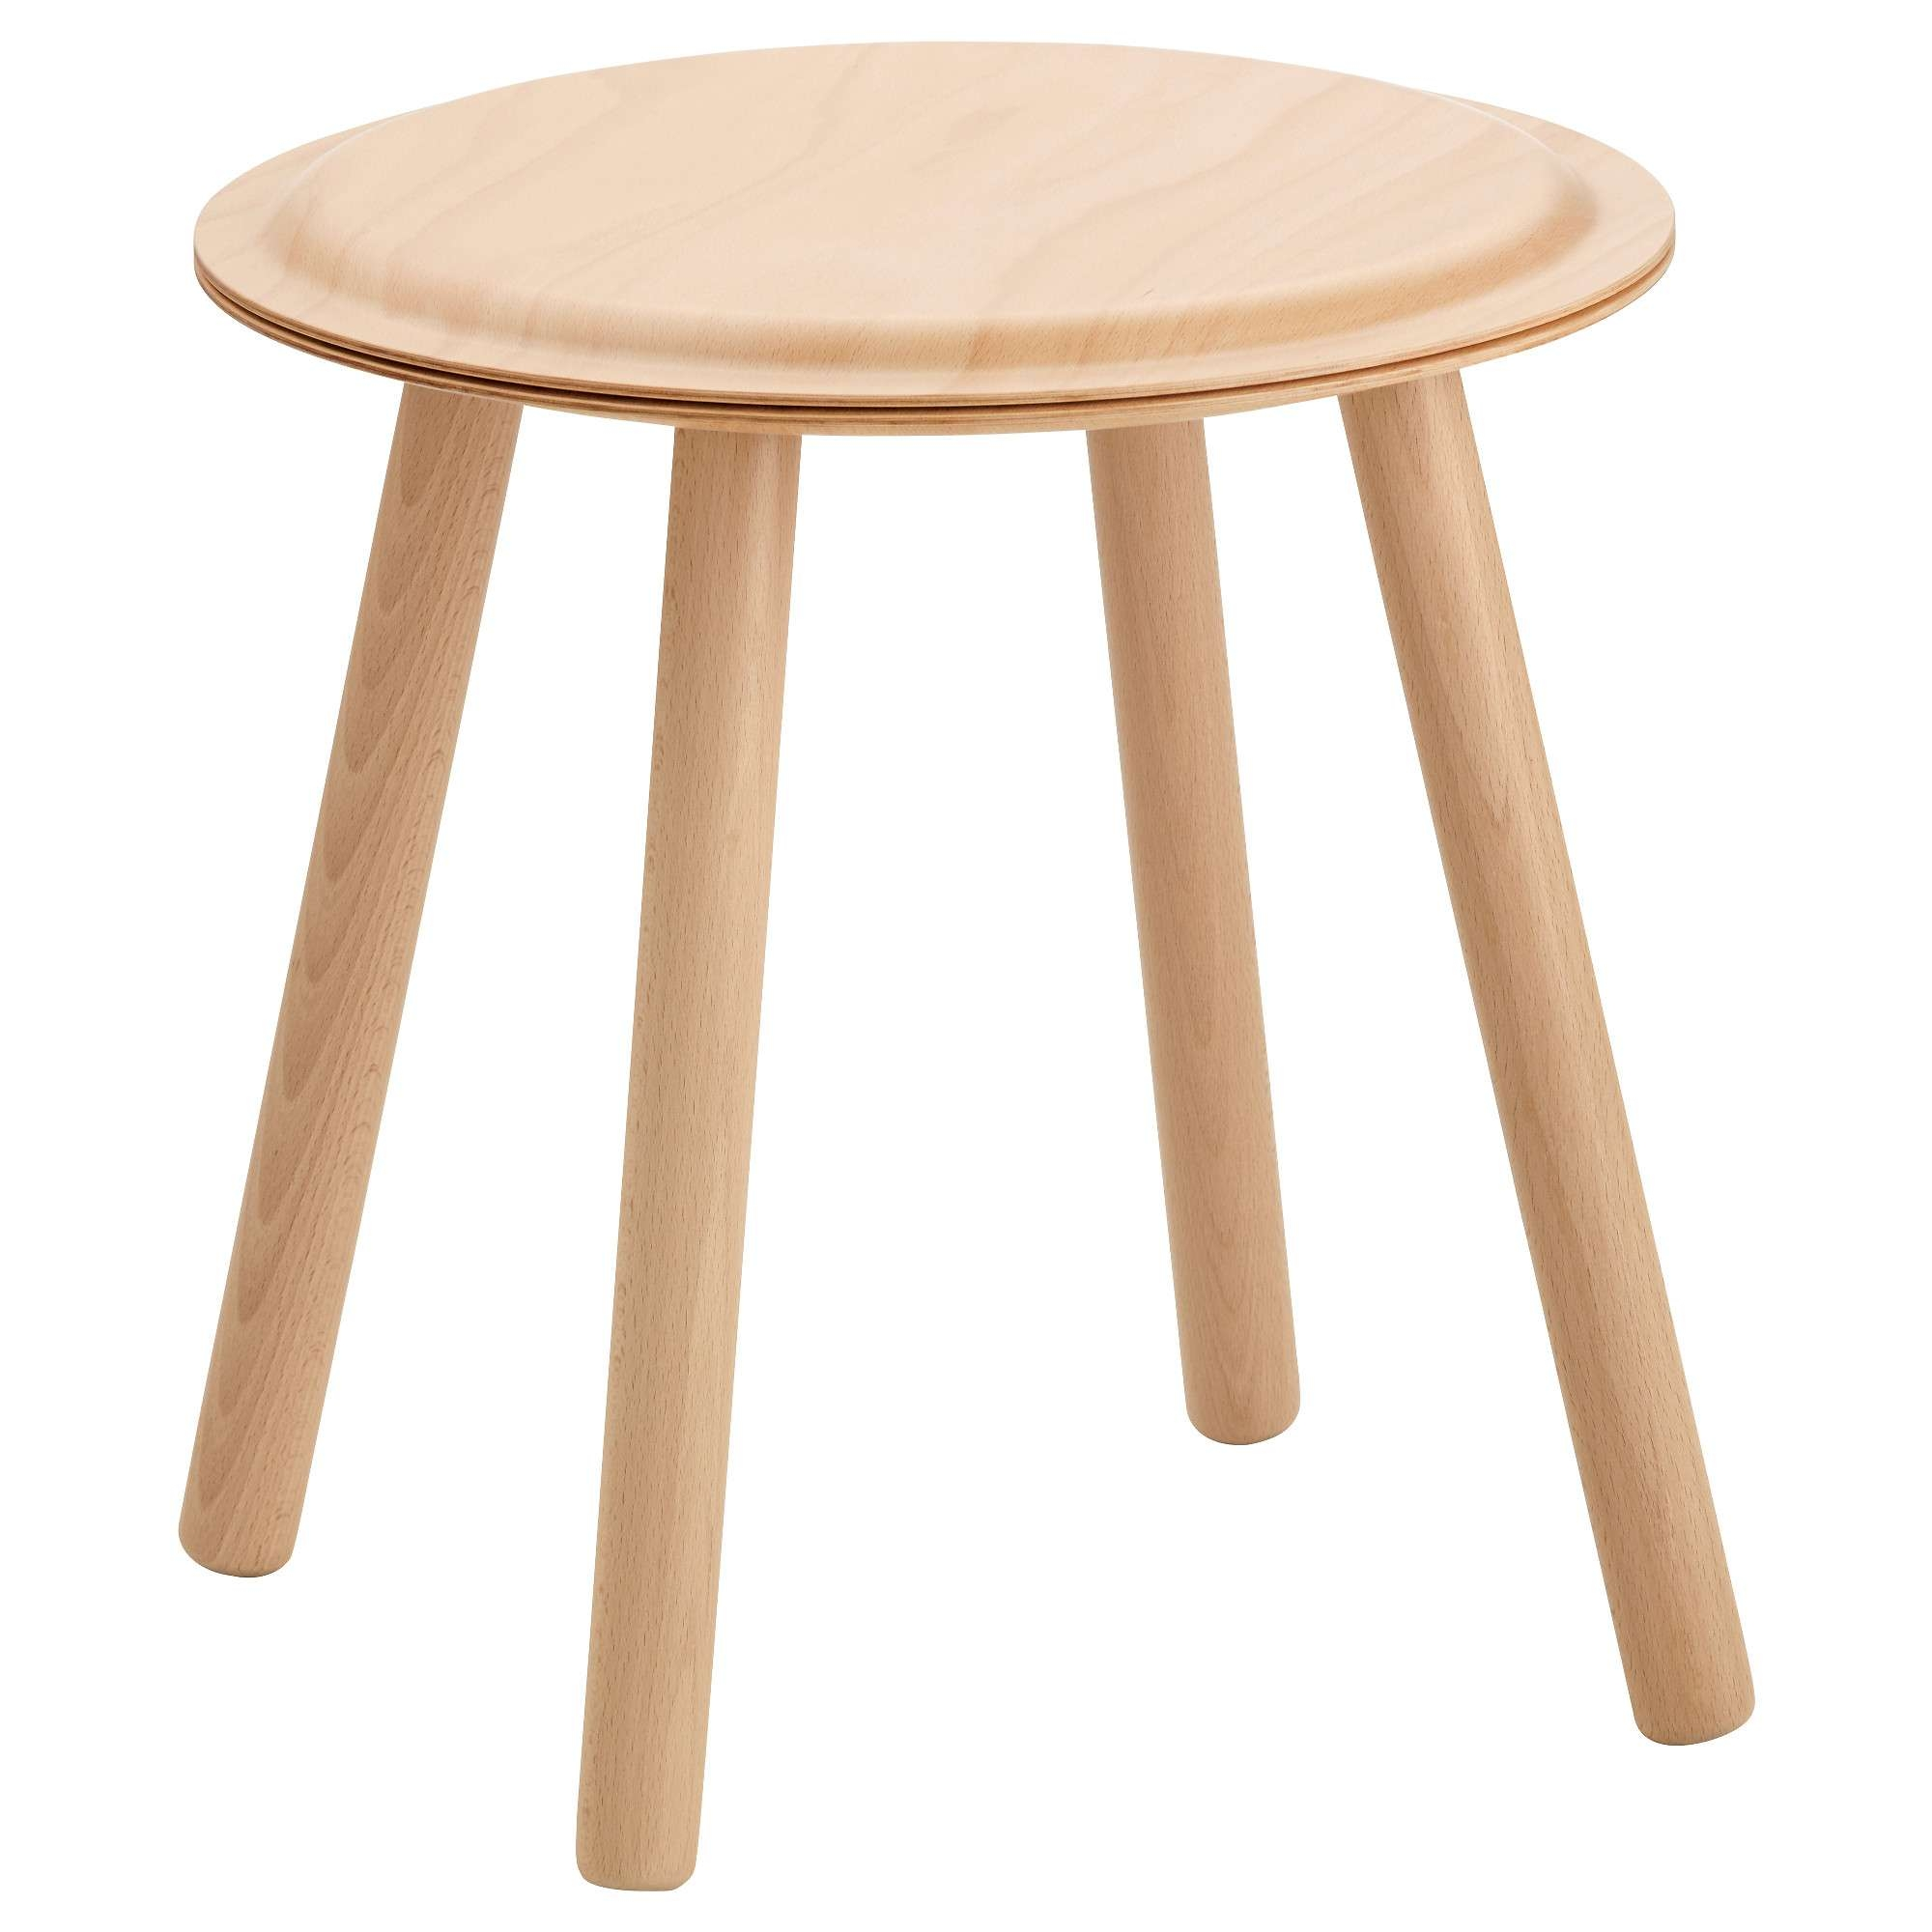 Most Popular Beech Coffee Tables Throughout Ikea Ps 2017 Side Table/stool Beech – Ikea (View 6 of 20)